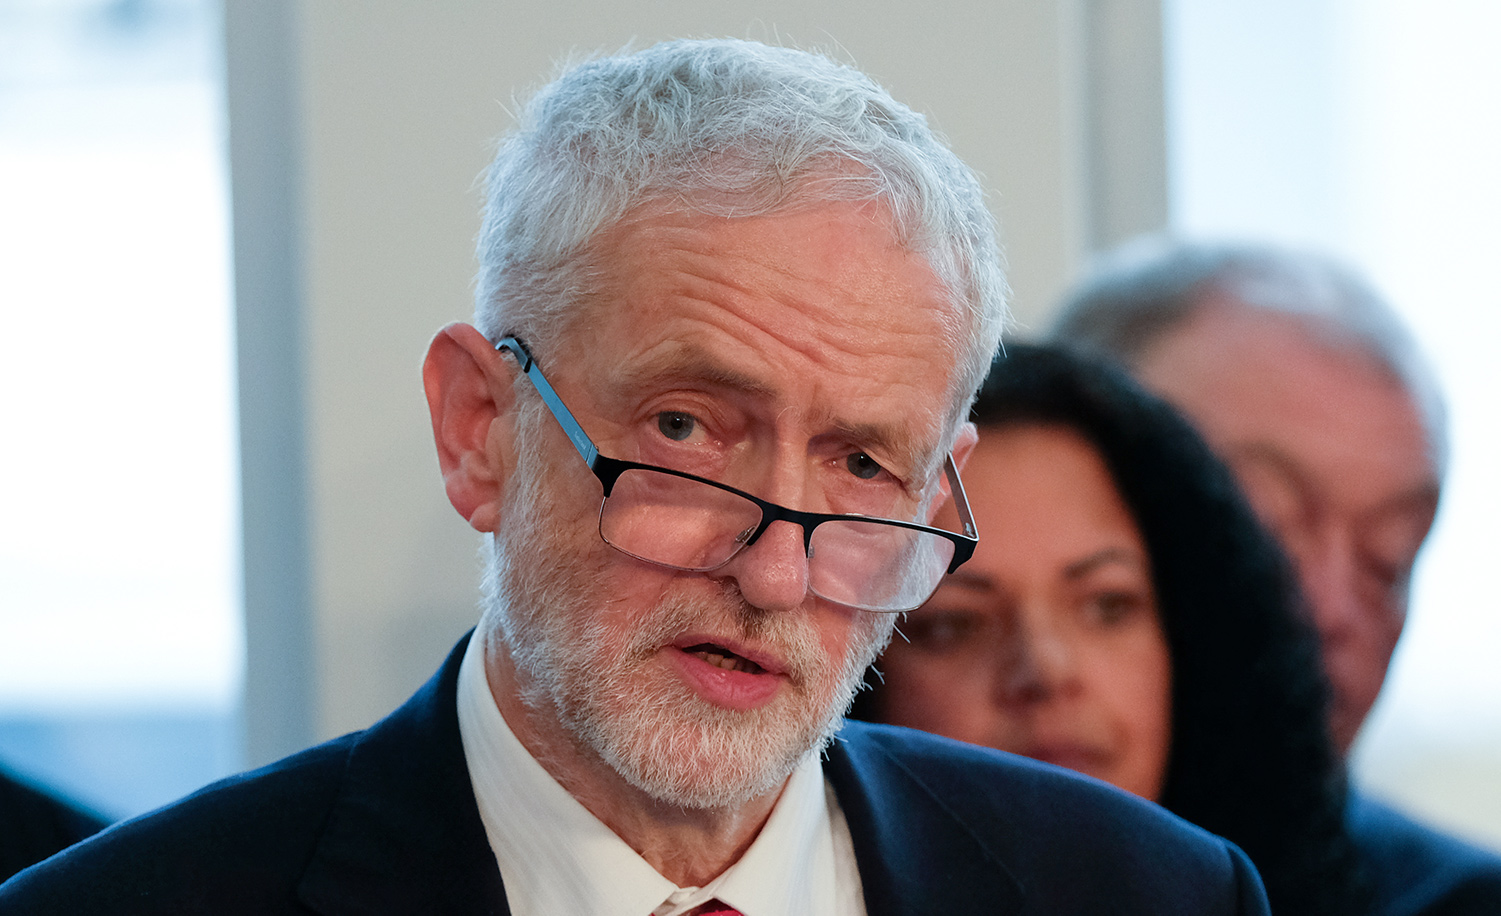 British Labor leader Jeremy Corbyn on January 10, 2019 in Wakefield, England. Ian Forsyth/Getty Images.